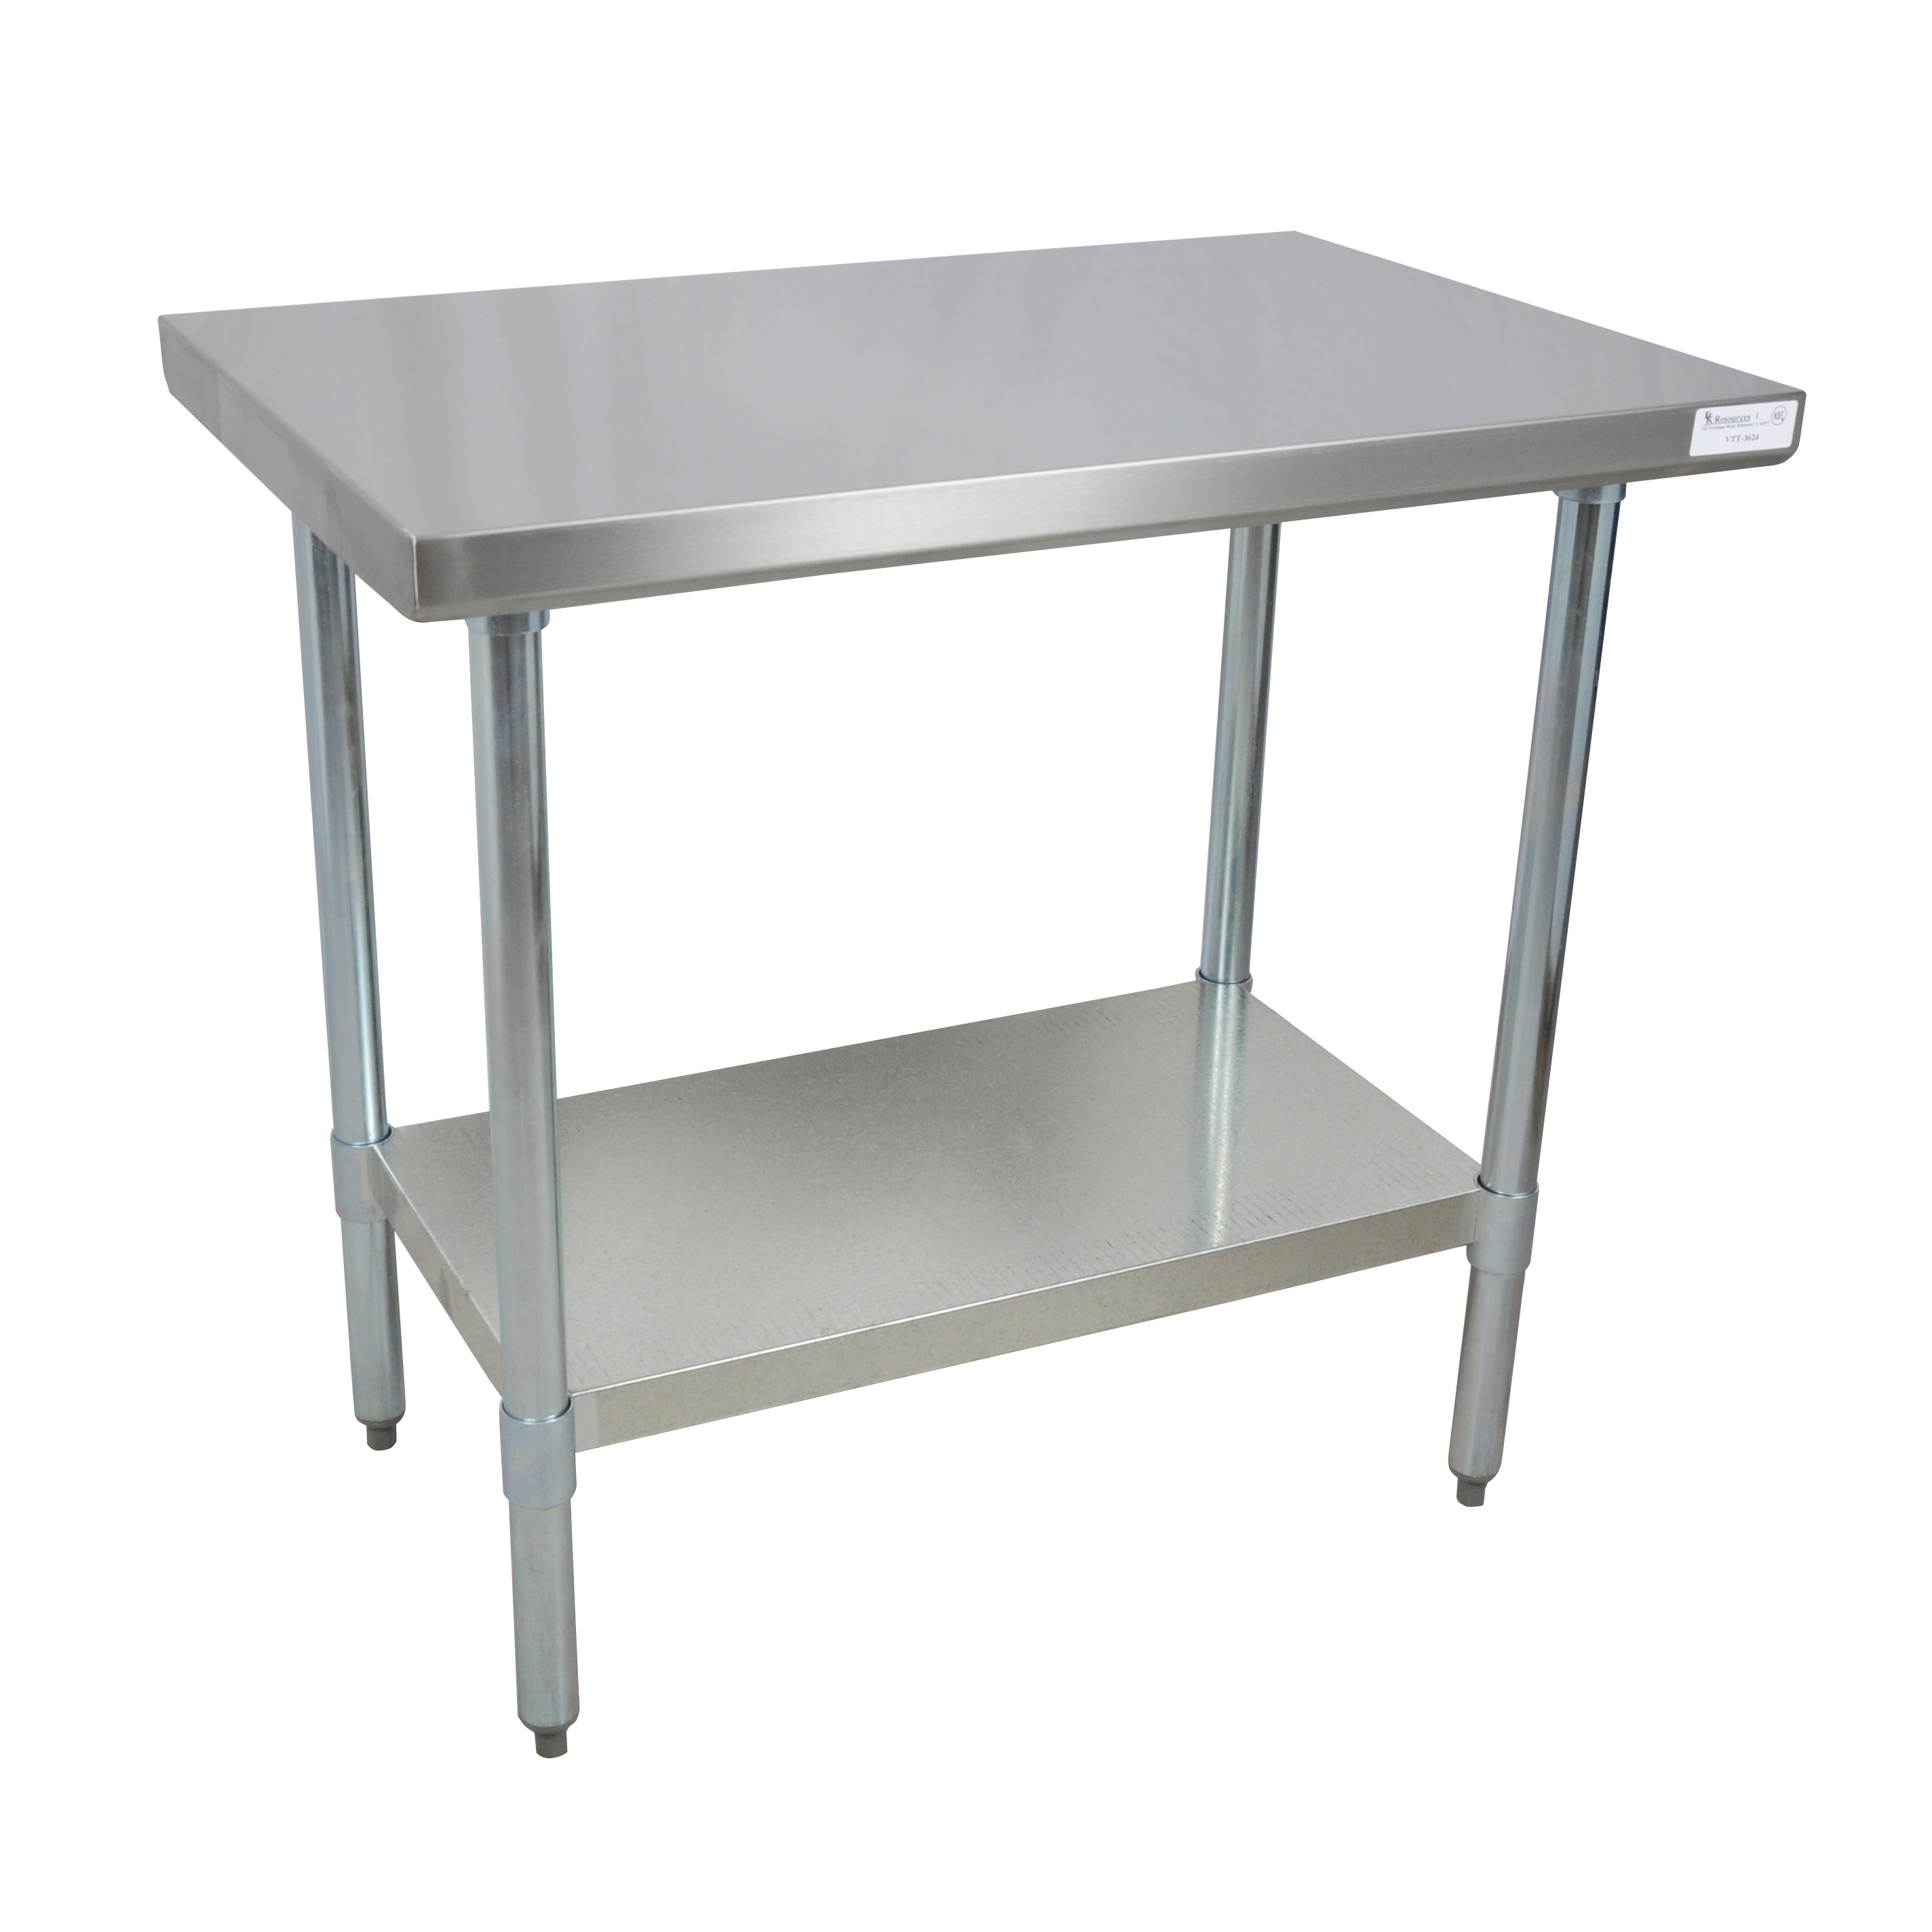 BK Resources QVT-3030 work table,  30